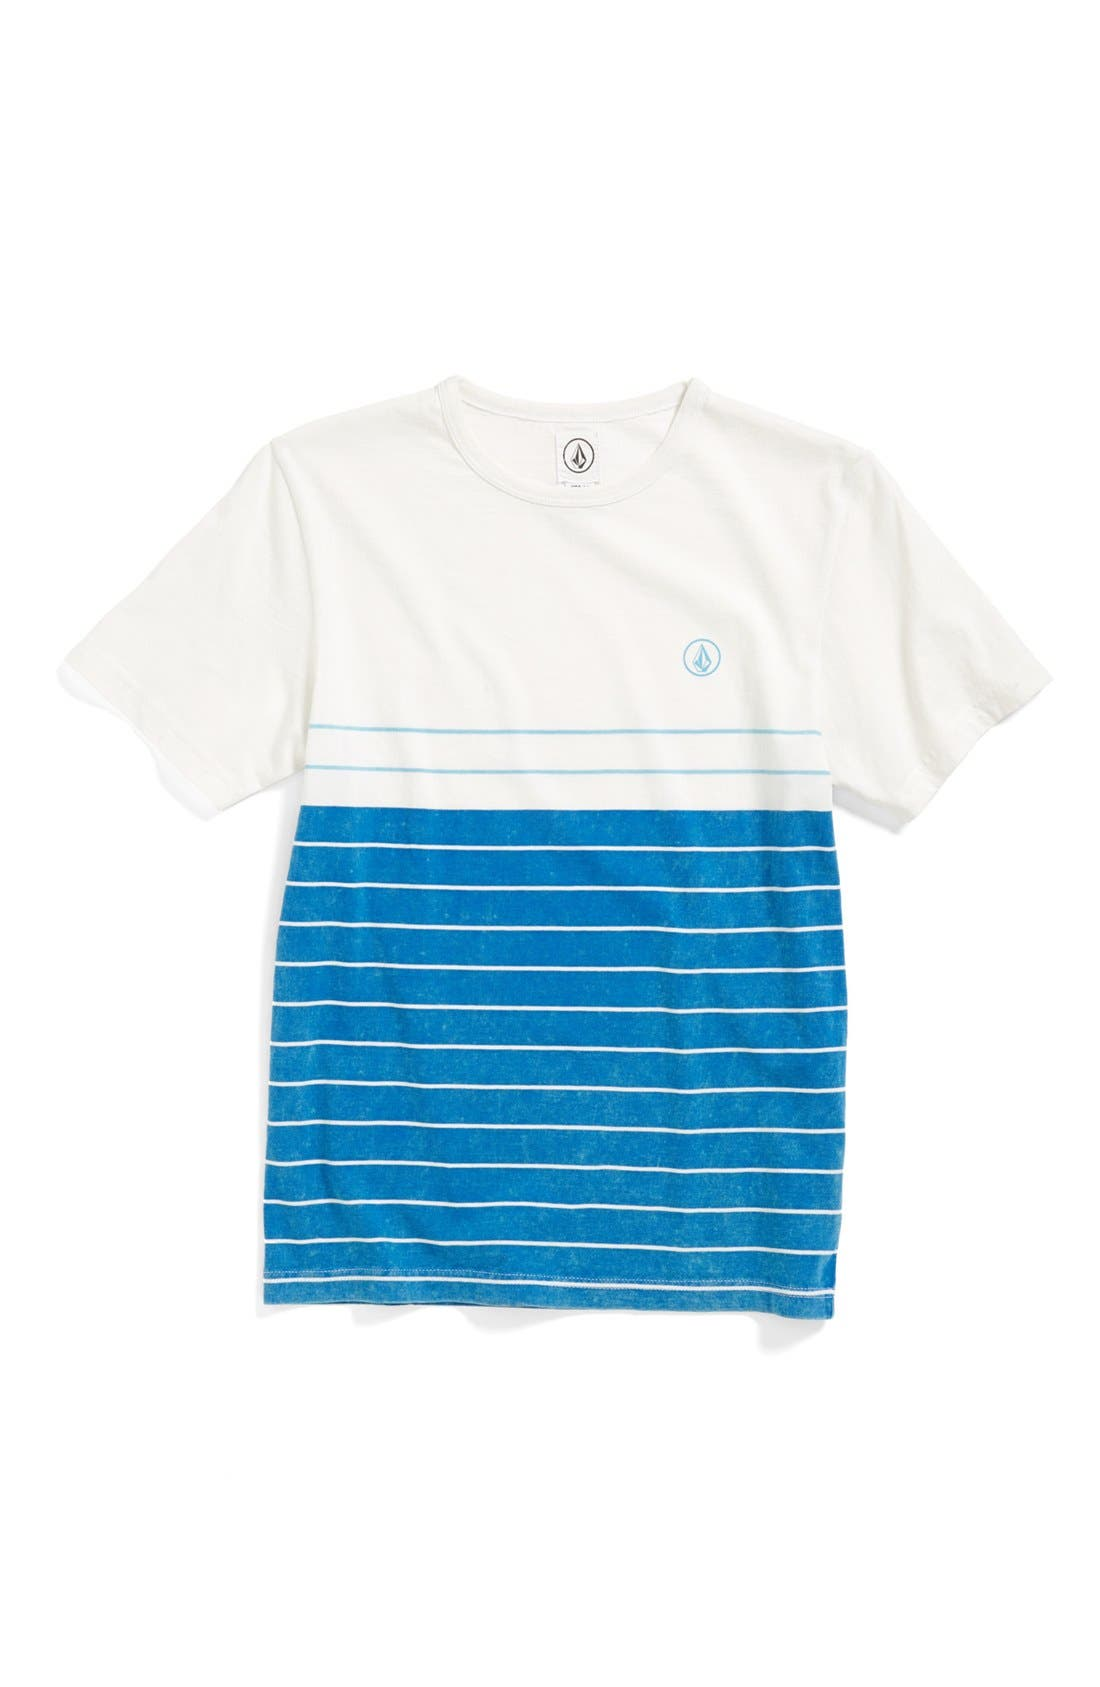 Main Image - Volcom 'Ogden' Short Sleeve Crewneck T-Shirt (Big Boys)